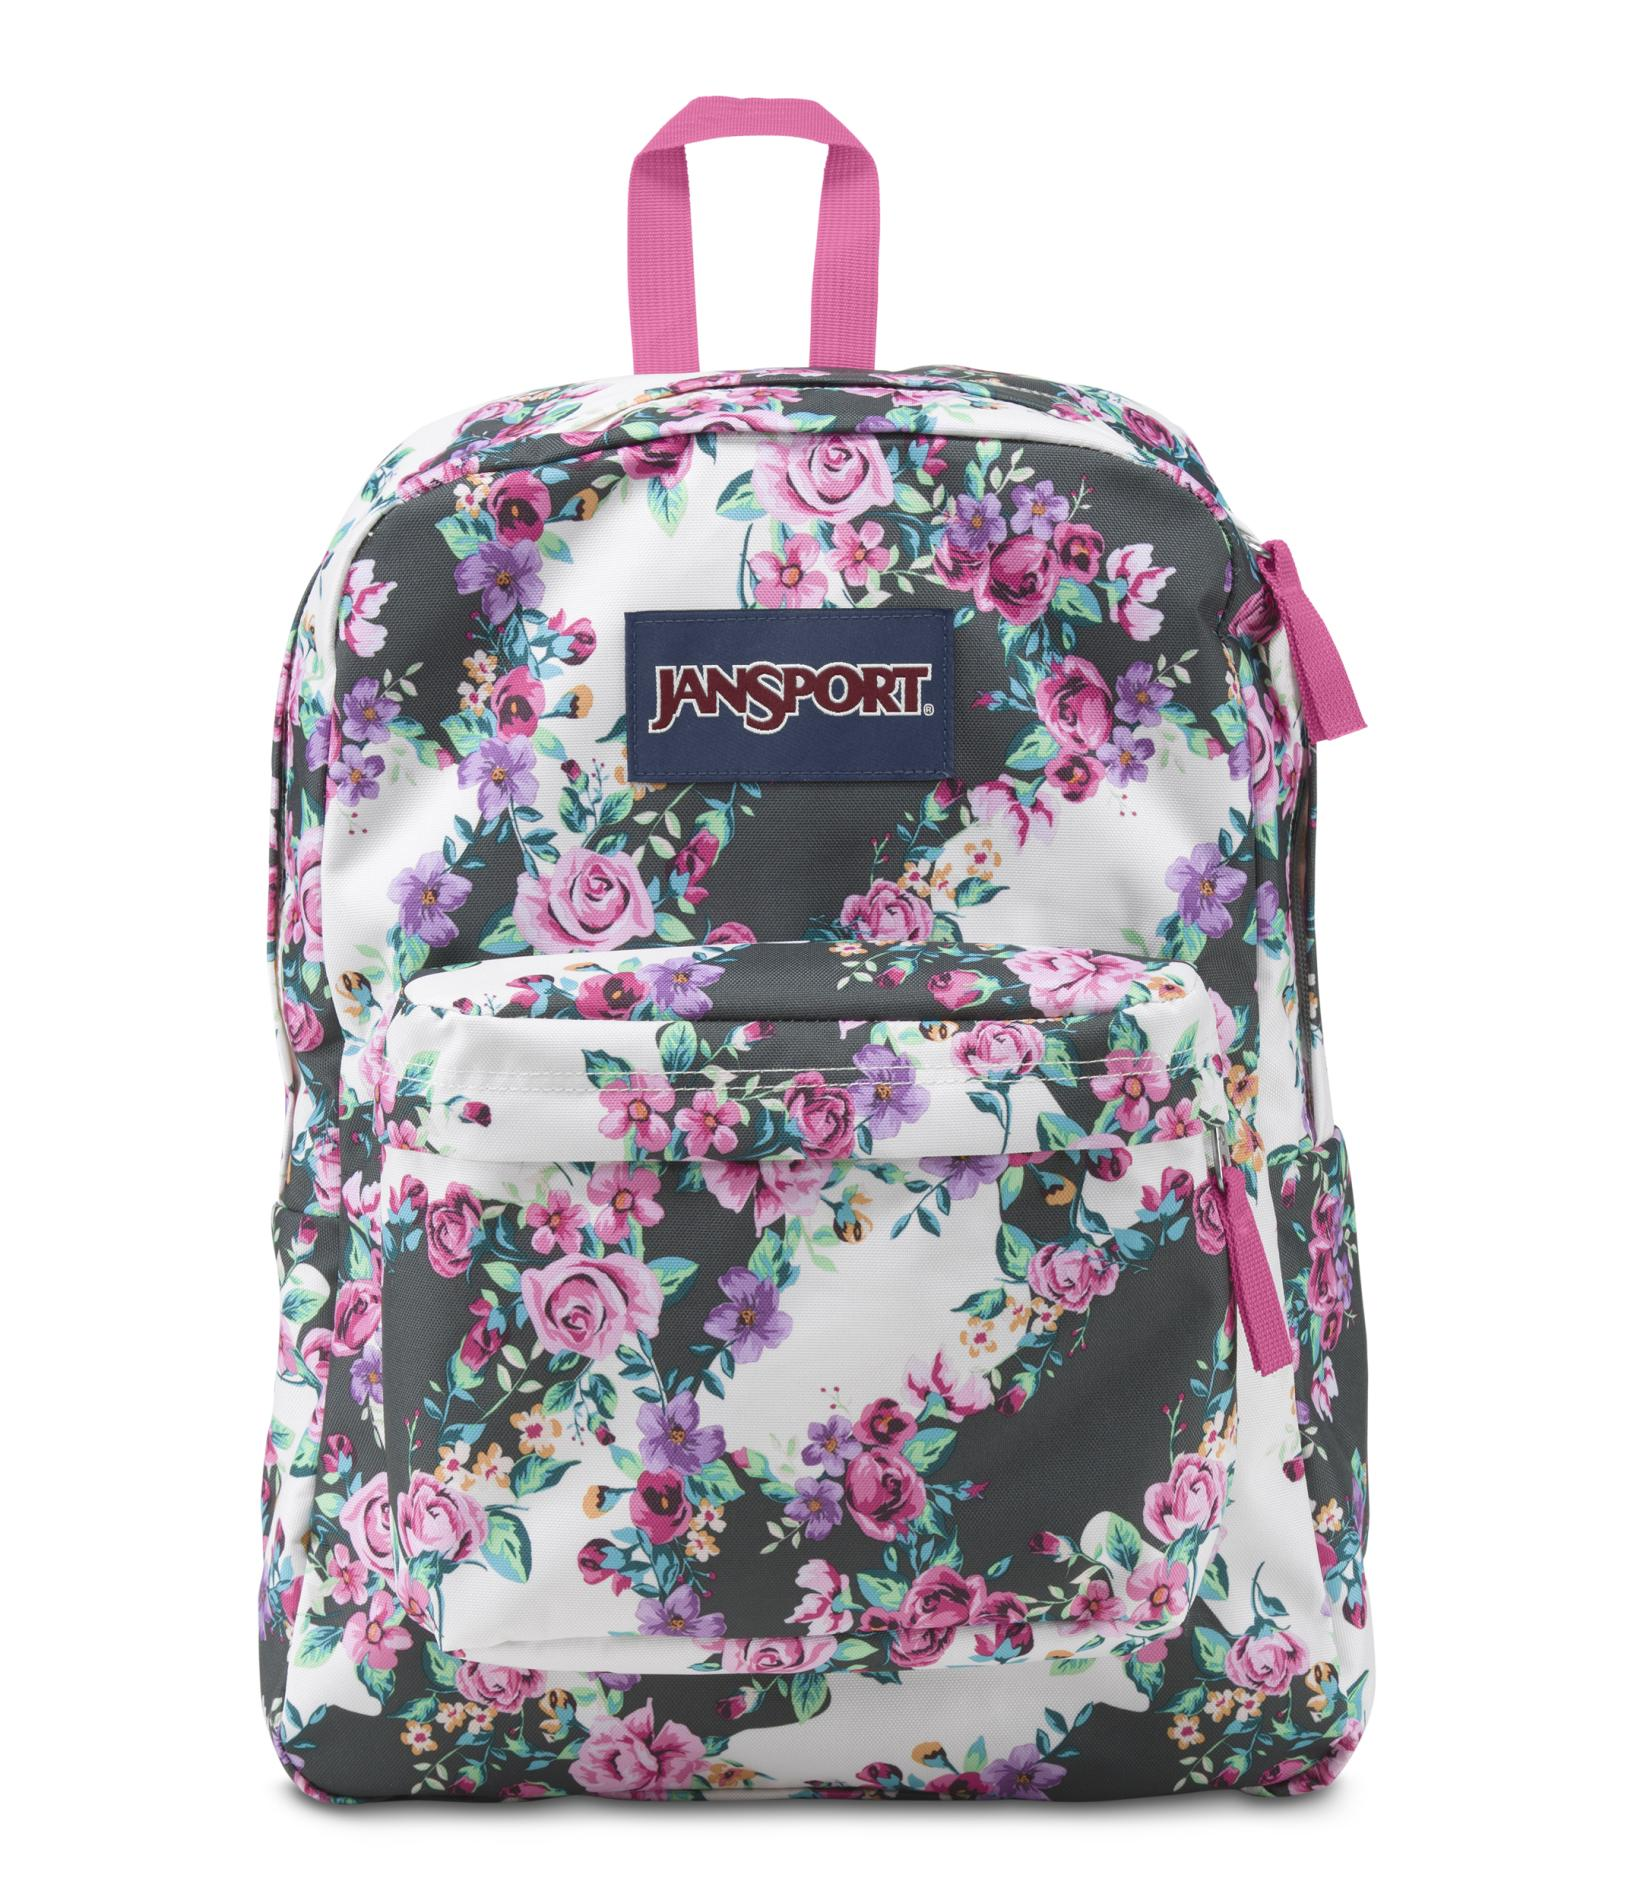 e3e981c753a8 Jansport Flower Backpack- Fenix Toulouse Handball